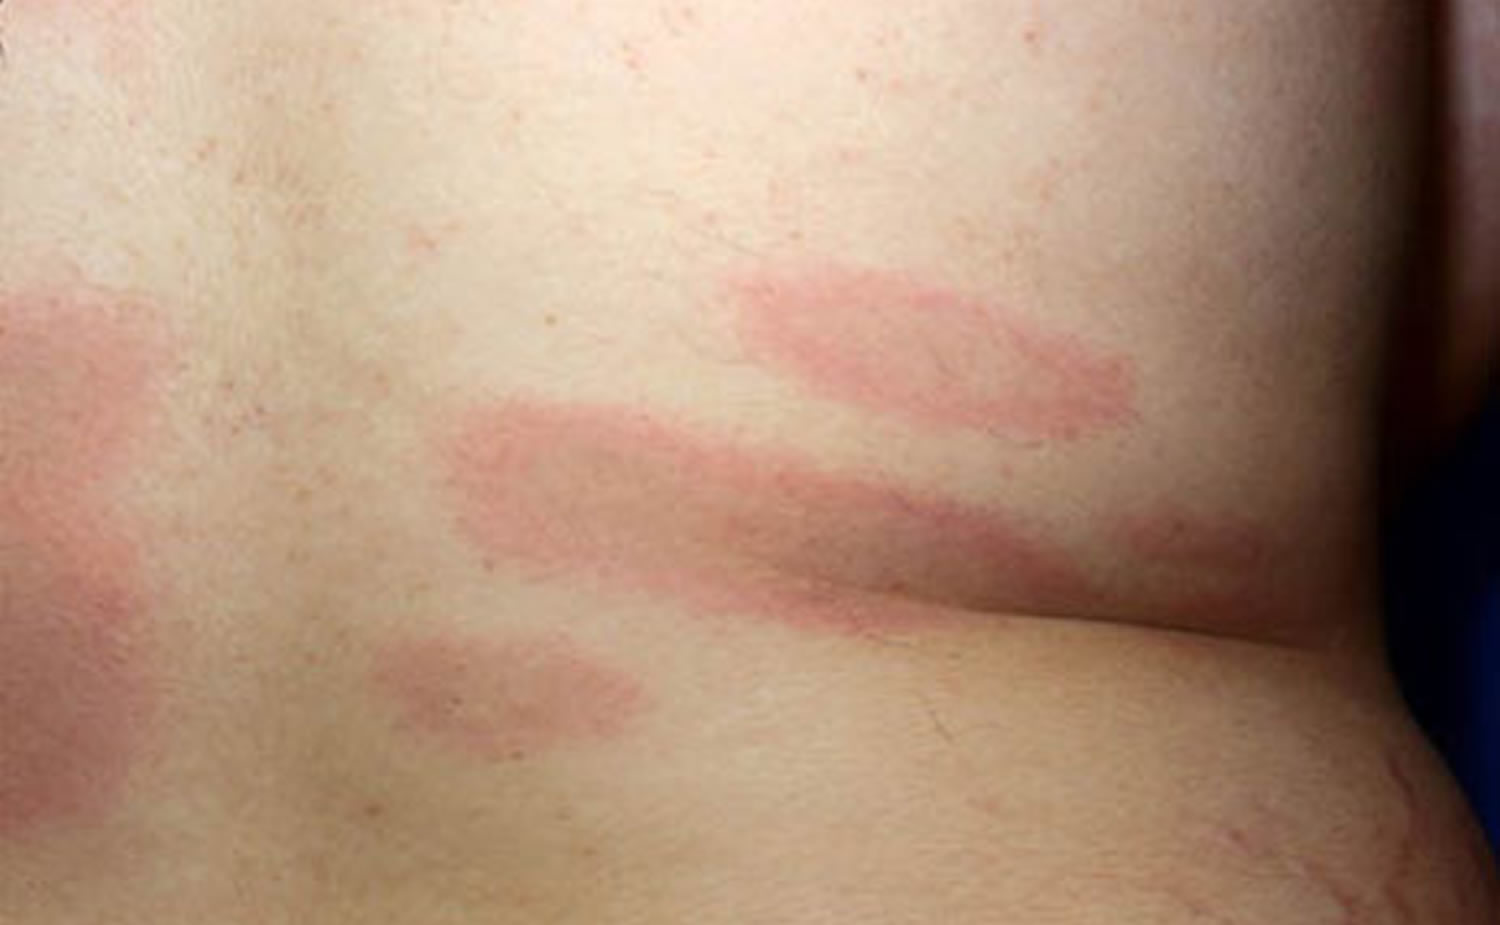 lyme disease multiple rashes